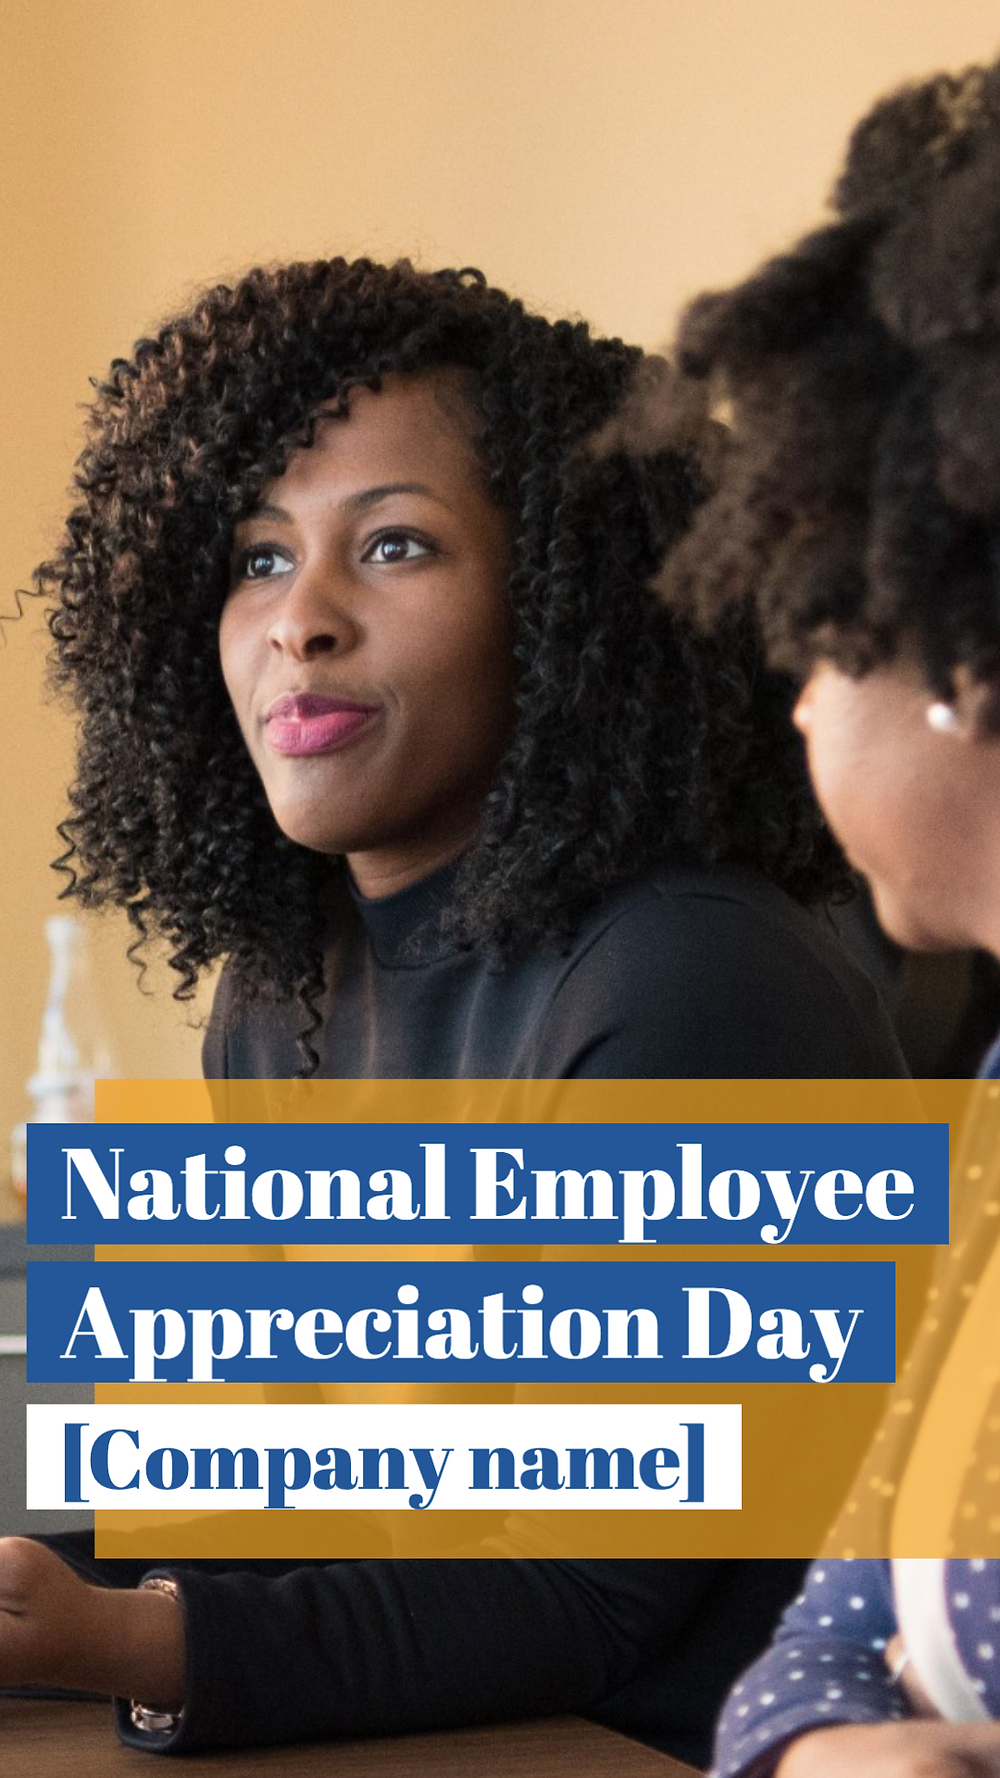 Employee Appreciation Day social media story template for small businesses